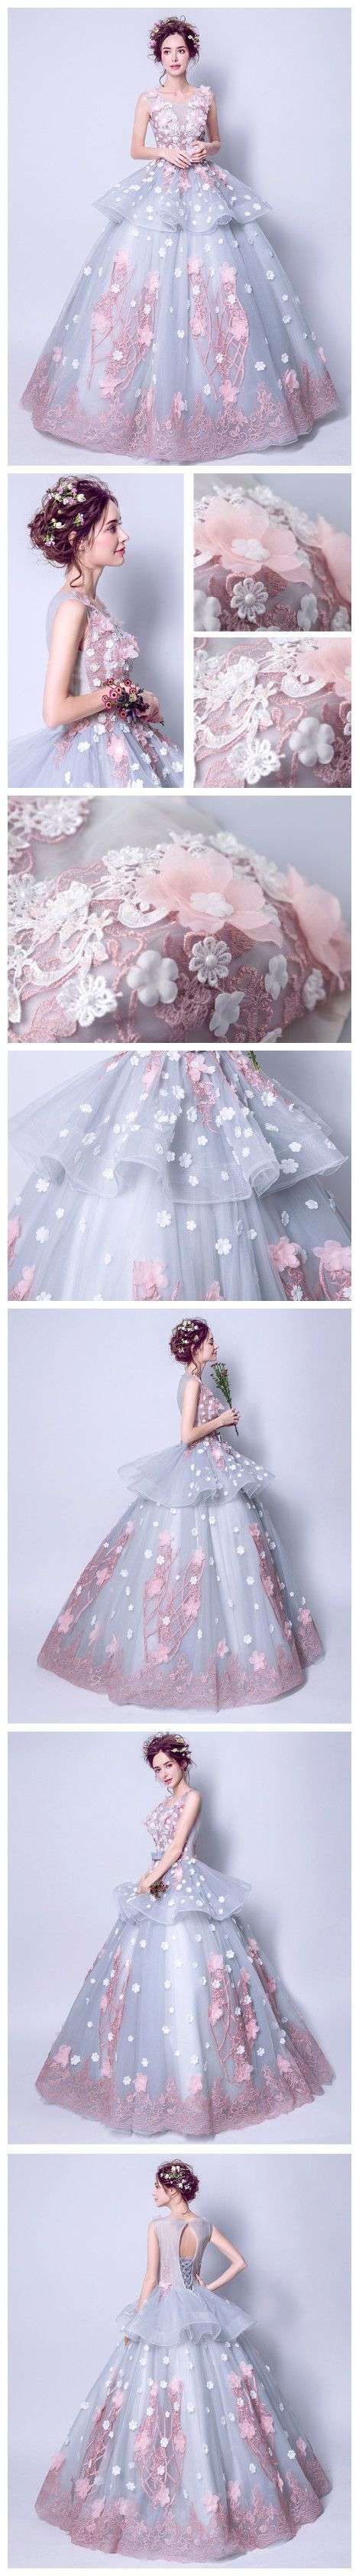 CHIC A-LINE BALL GOWN SCOOP BLUE APPLIQUE SLEEVELESS PROM DRESS EVENING GOWNS